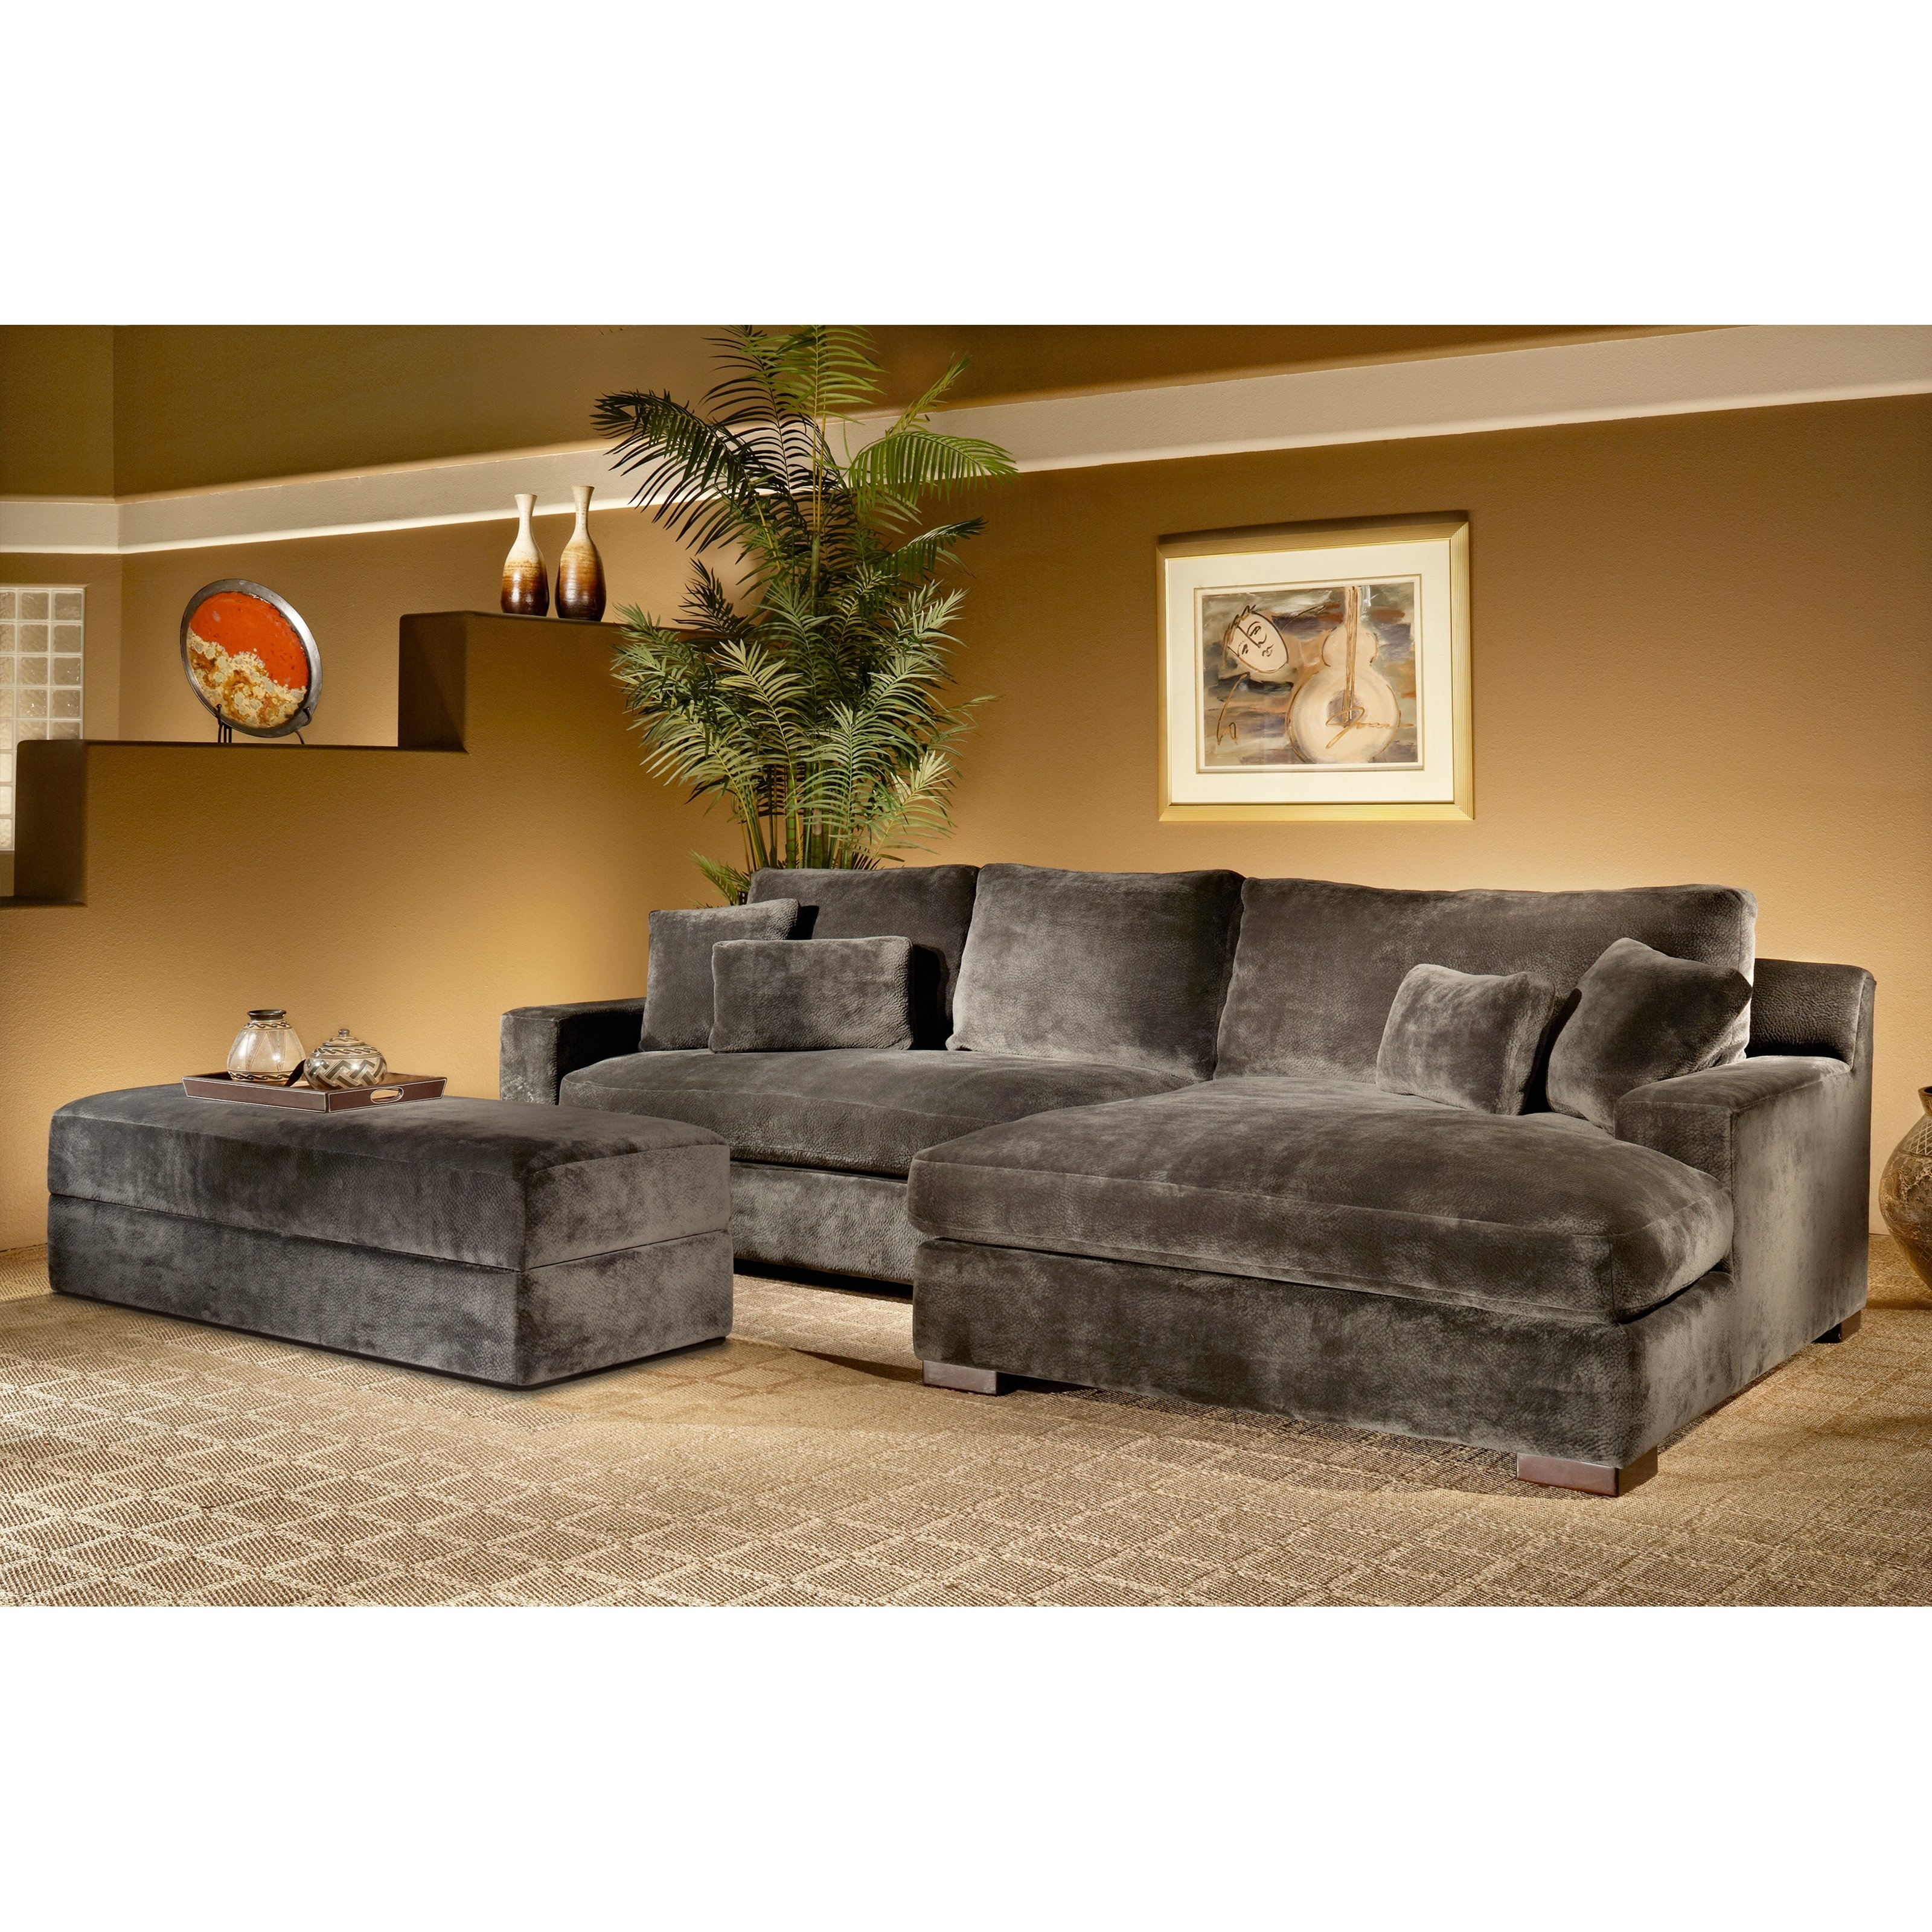 Sectional Sofas With Ottoman With Regard To Most Up To Date Fairmont Designs Doris 2 Piece Sectional Sofa With Storage Ottoman (View 14 of 20)